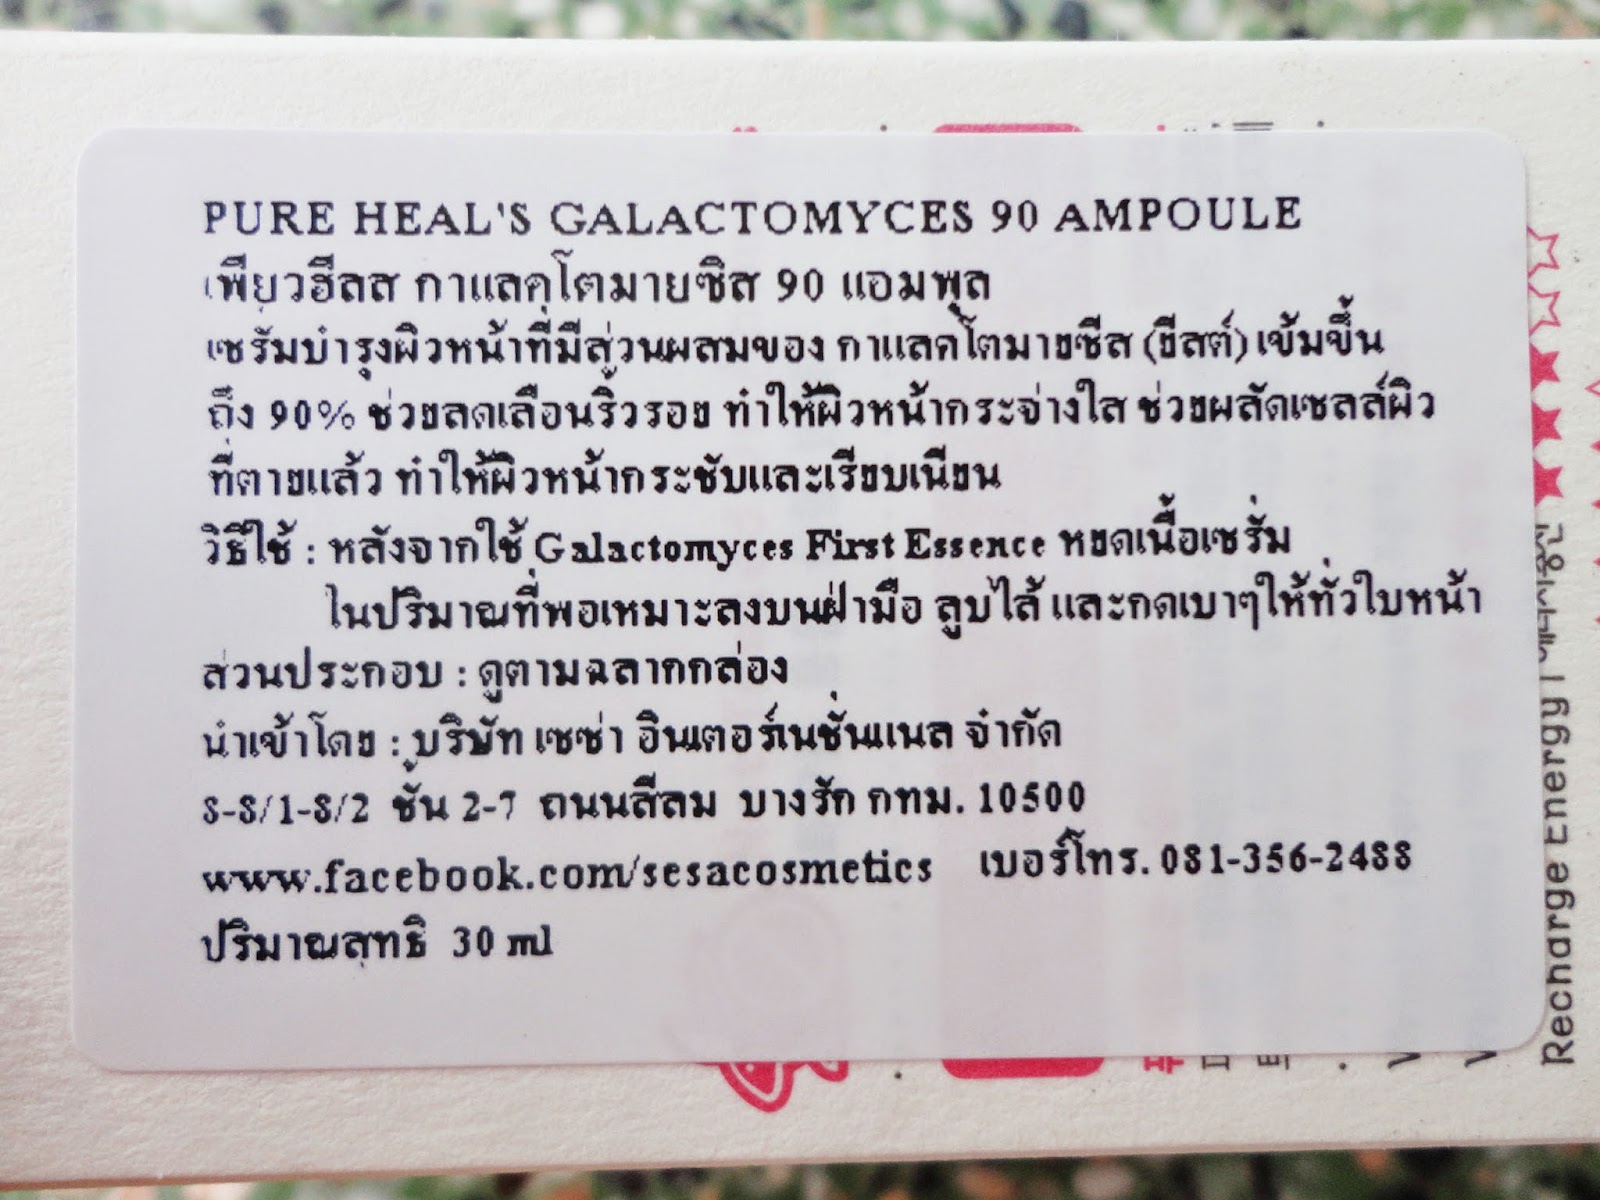 Pureheals Galactomyces 971 And 90 Ampoule 30ml